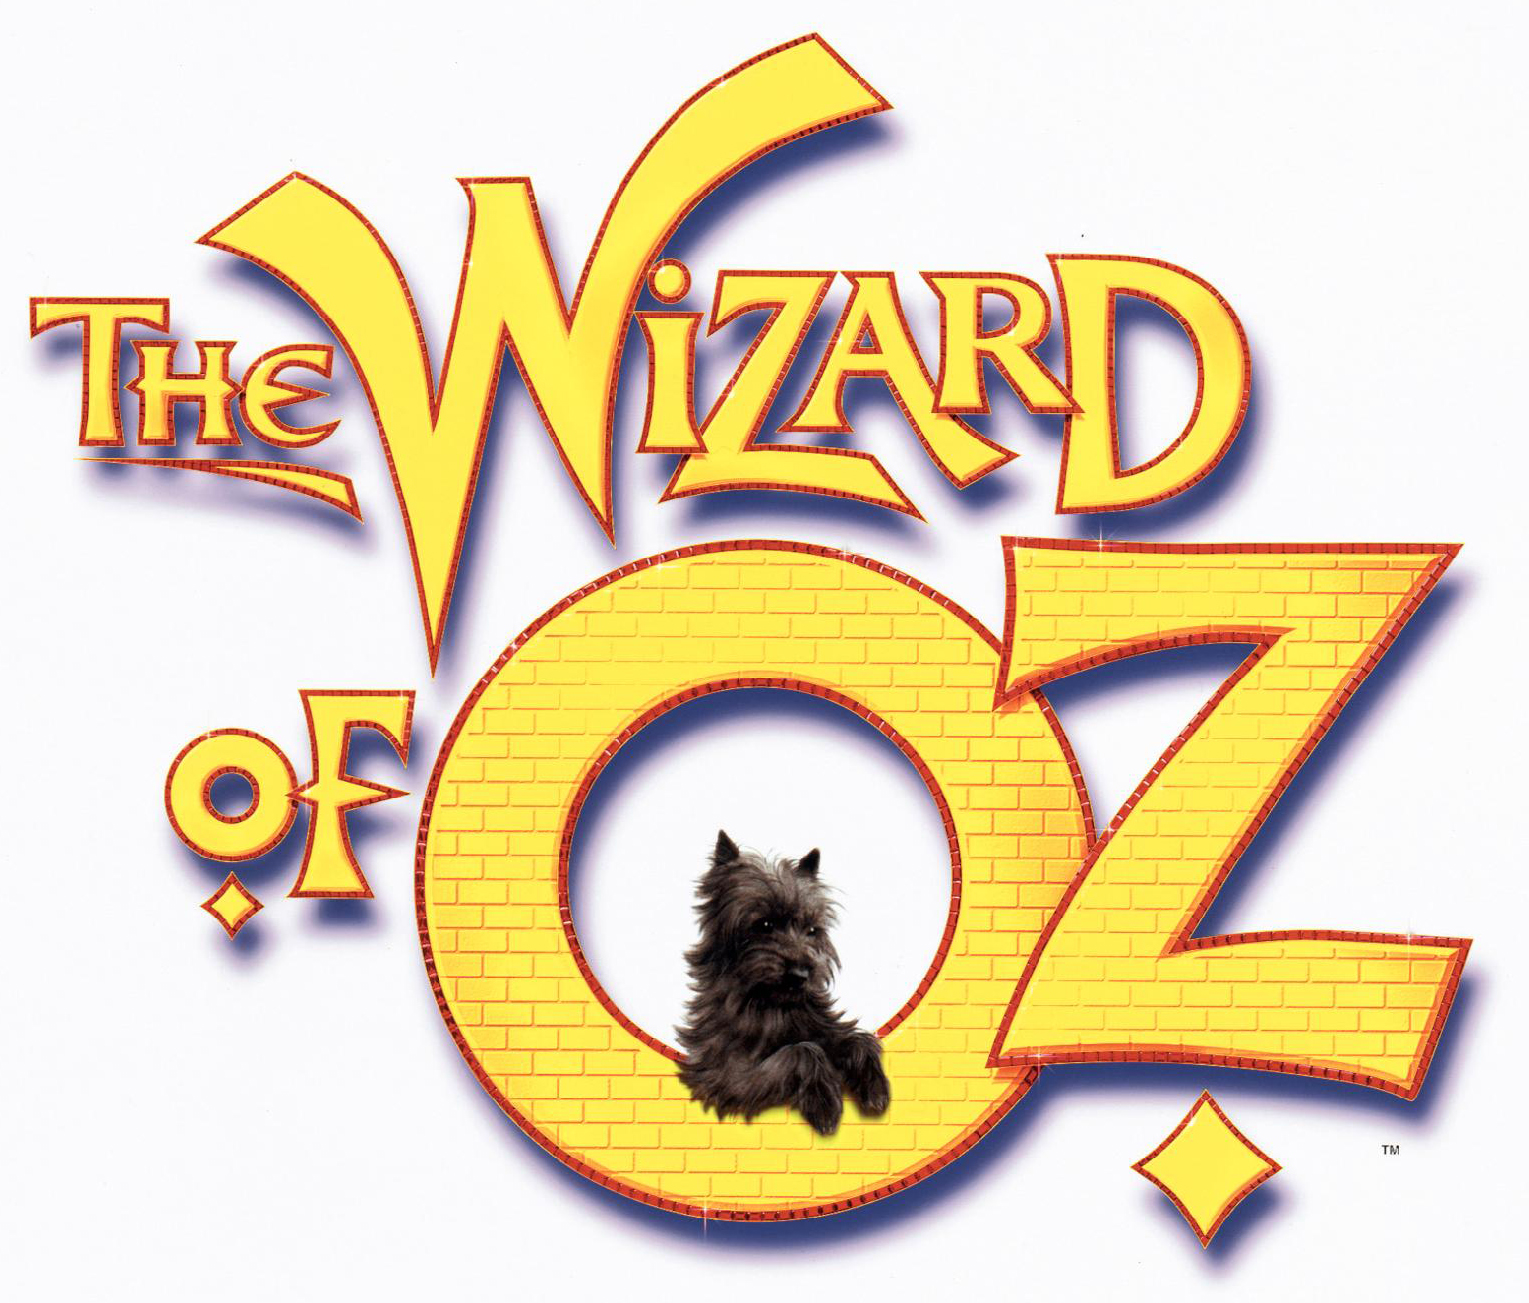 The Wizard of Oz 1999 Logo with Toto